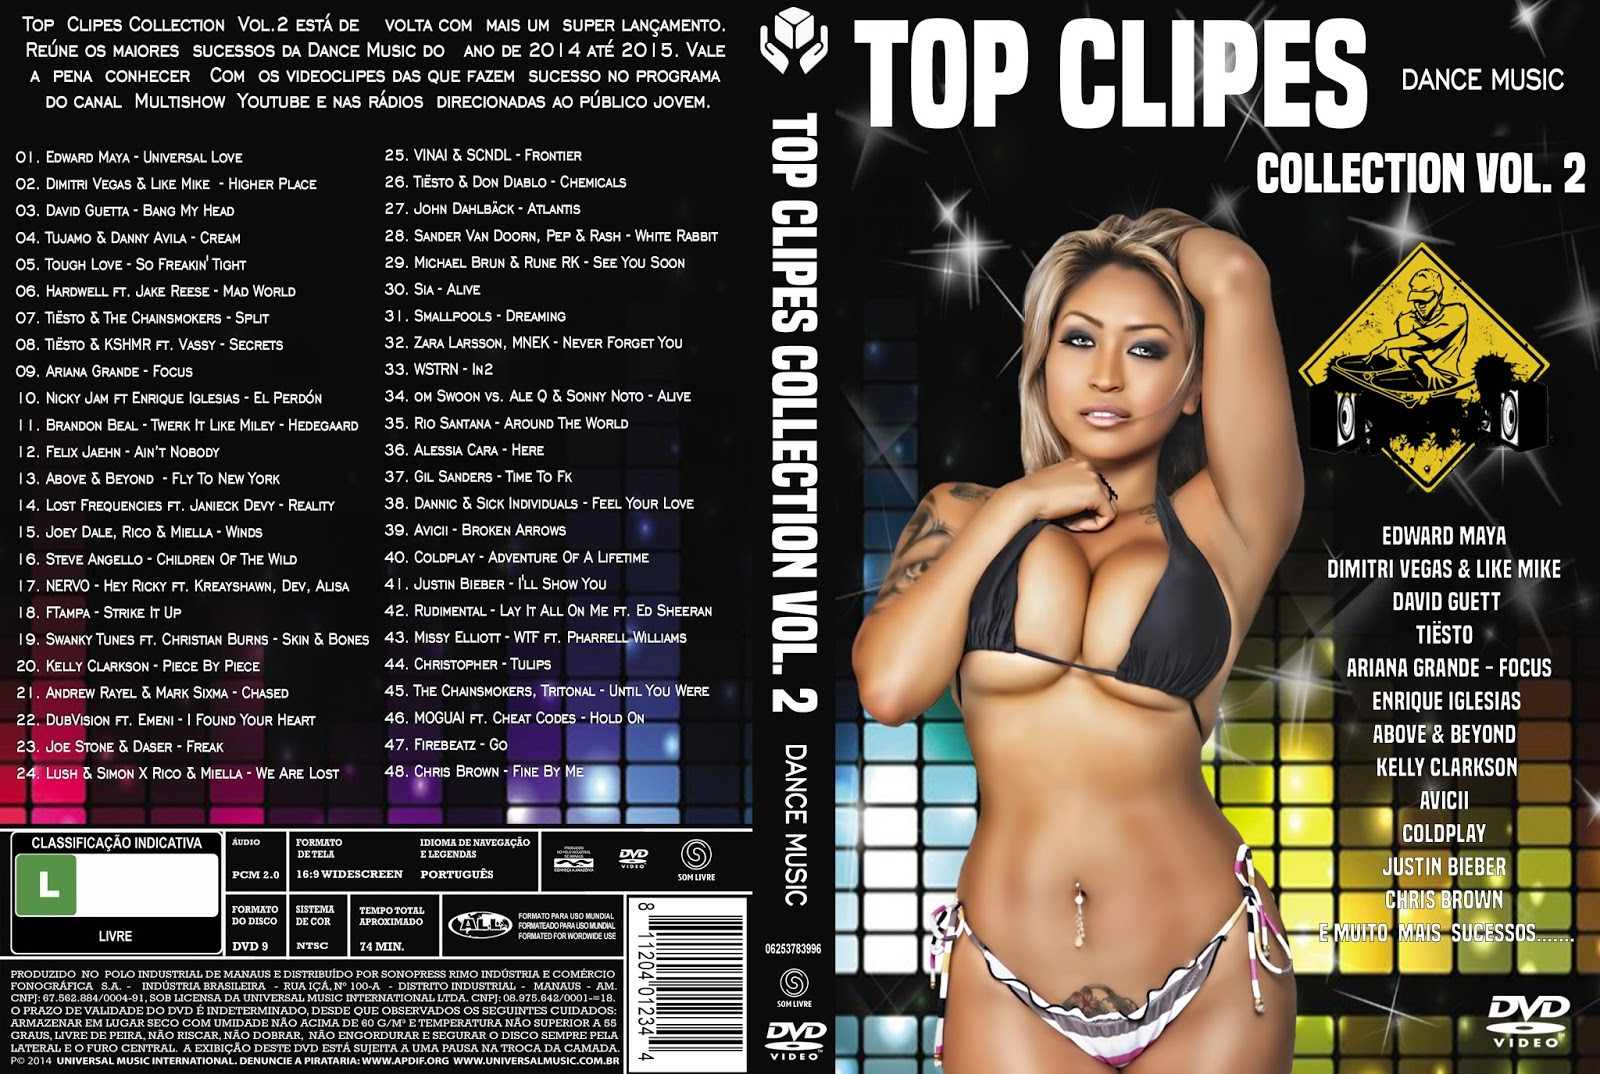 Top Clipes Collection Vol.2 Dance Music DVD-R